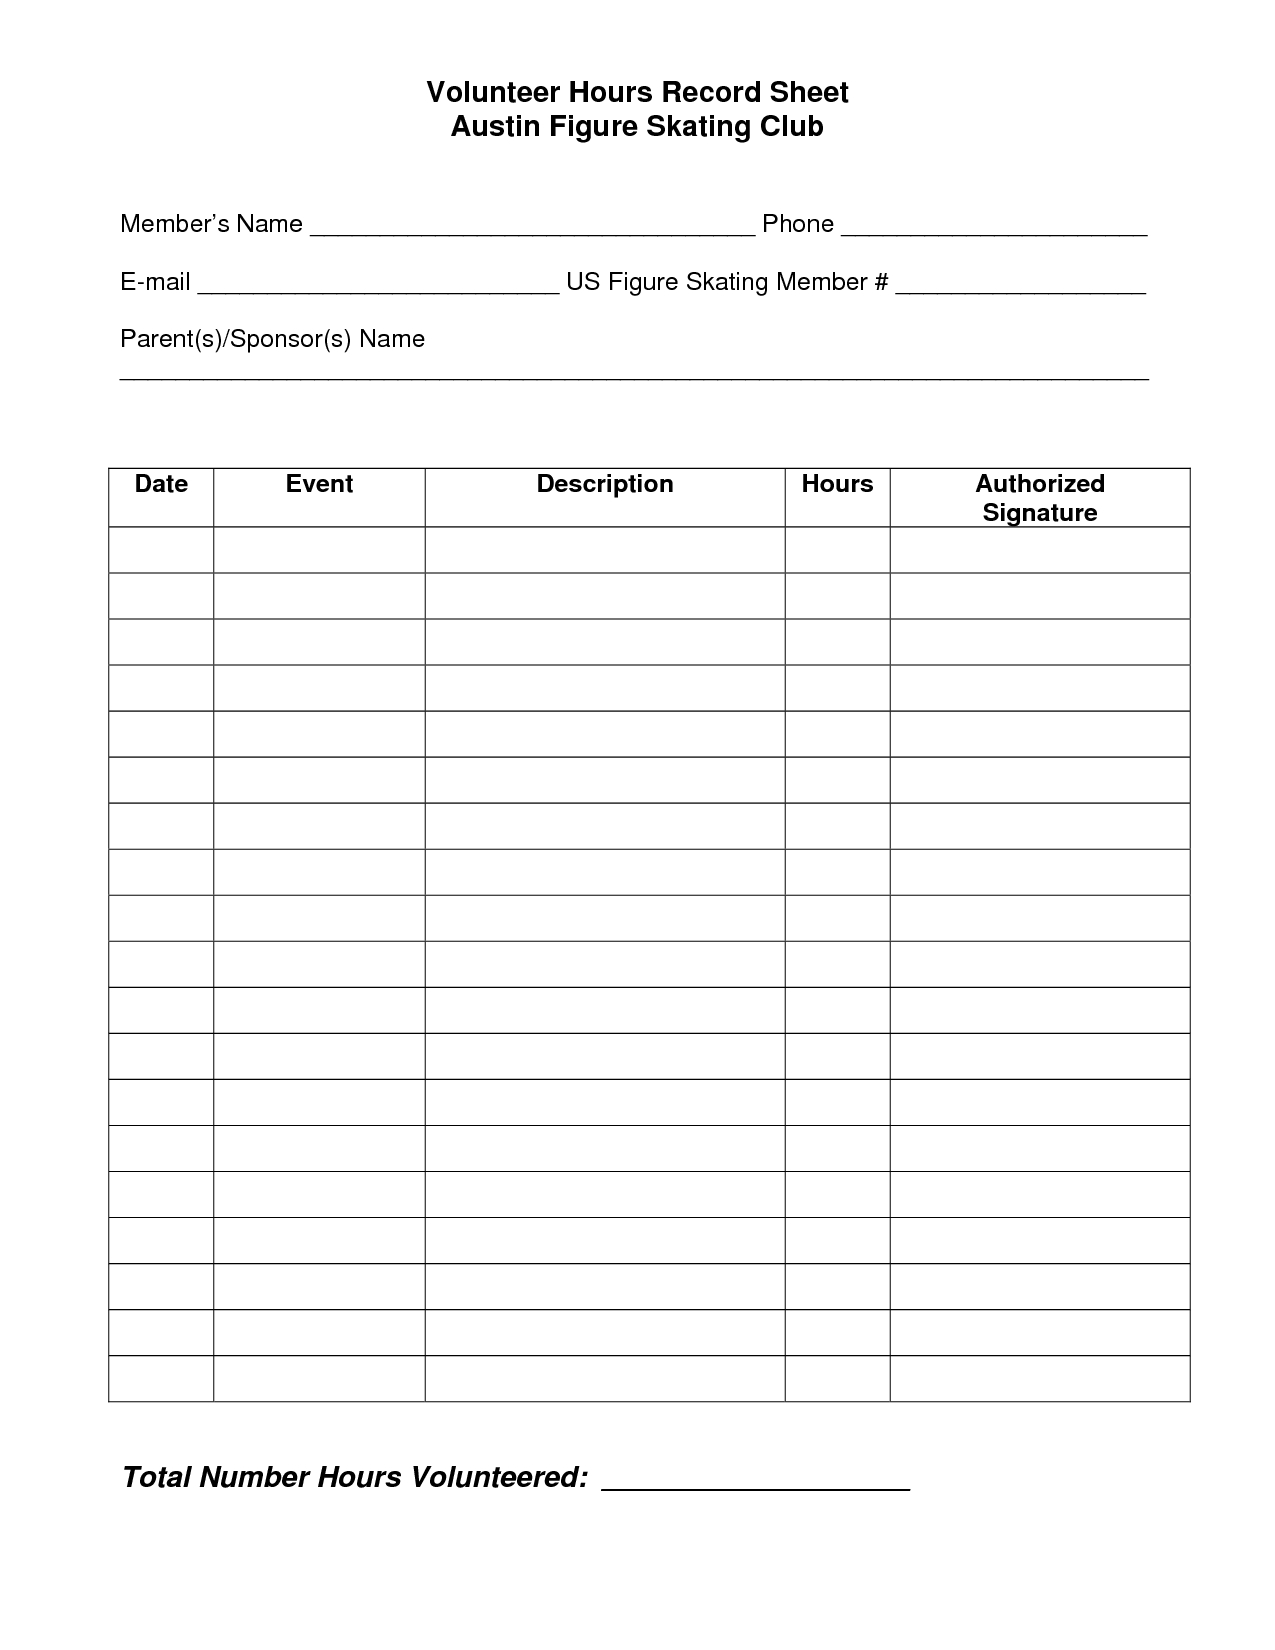 Service Hours Log Sheet Printable